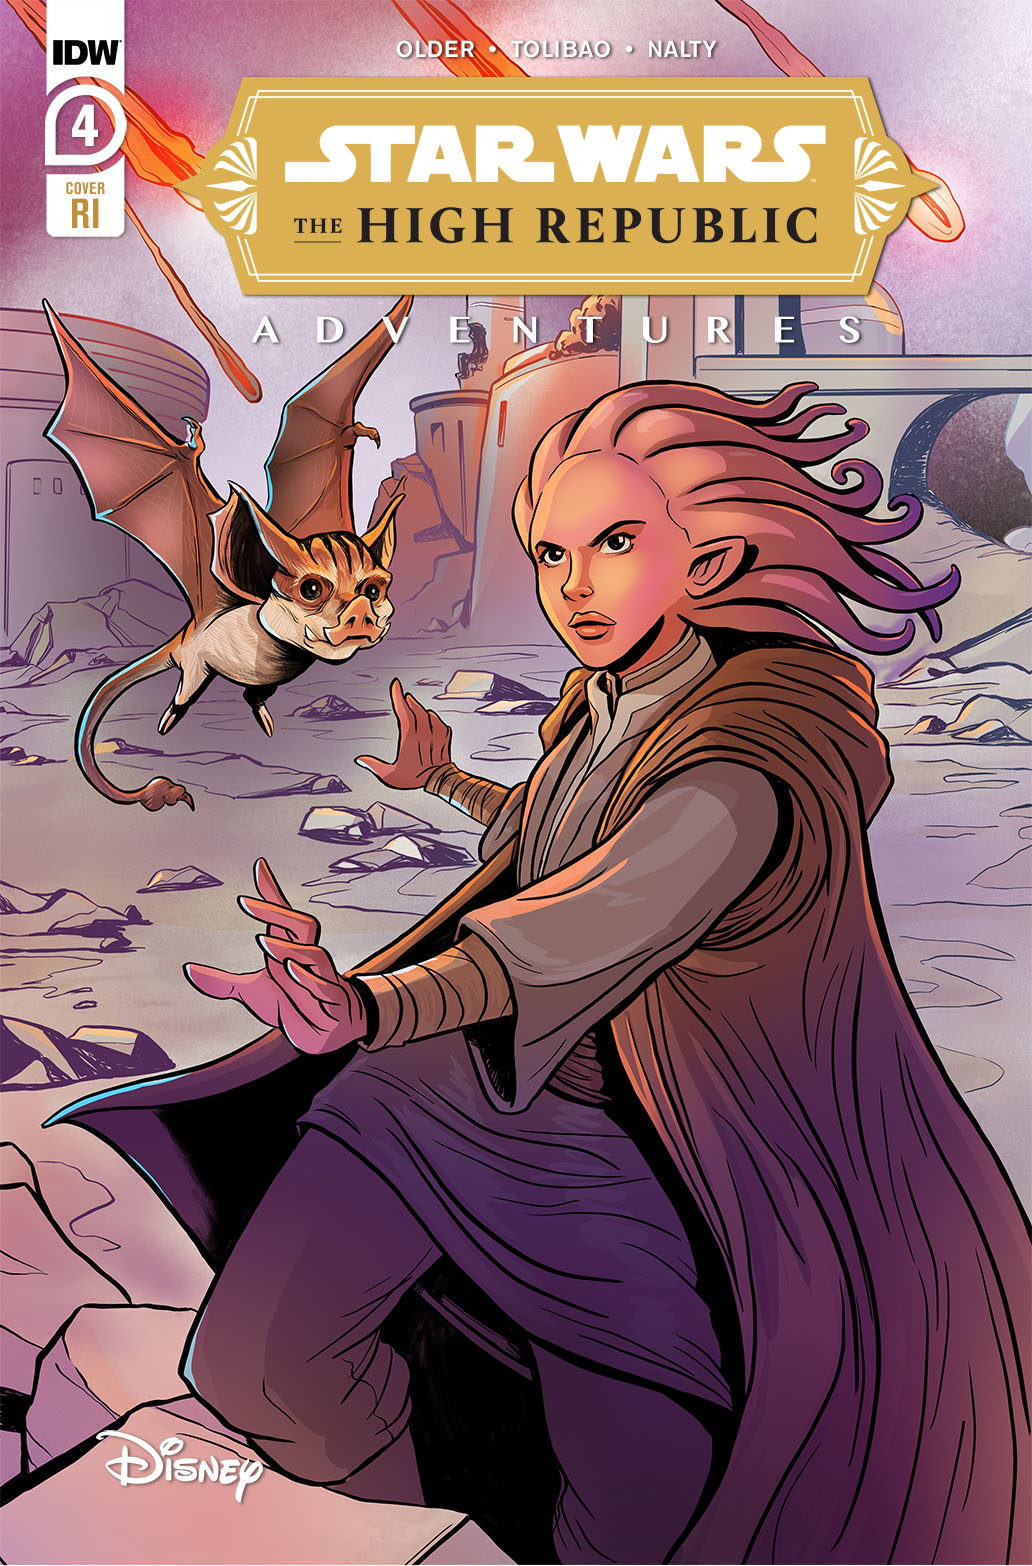 The High Republic Adventures #4 (Yael Nathan Variant Cover) (Mai 2021)